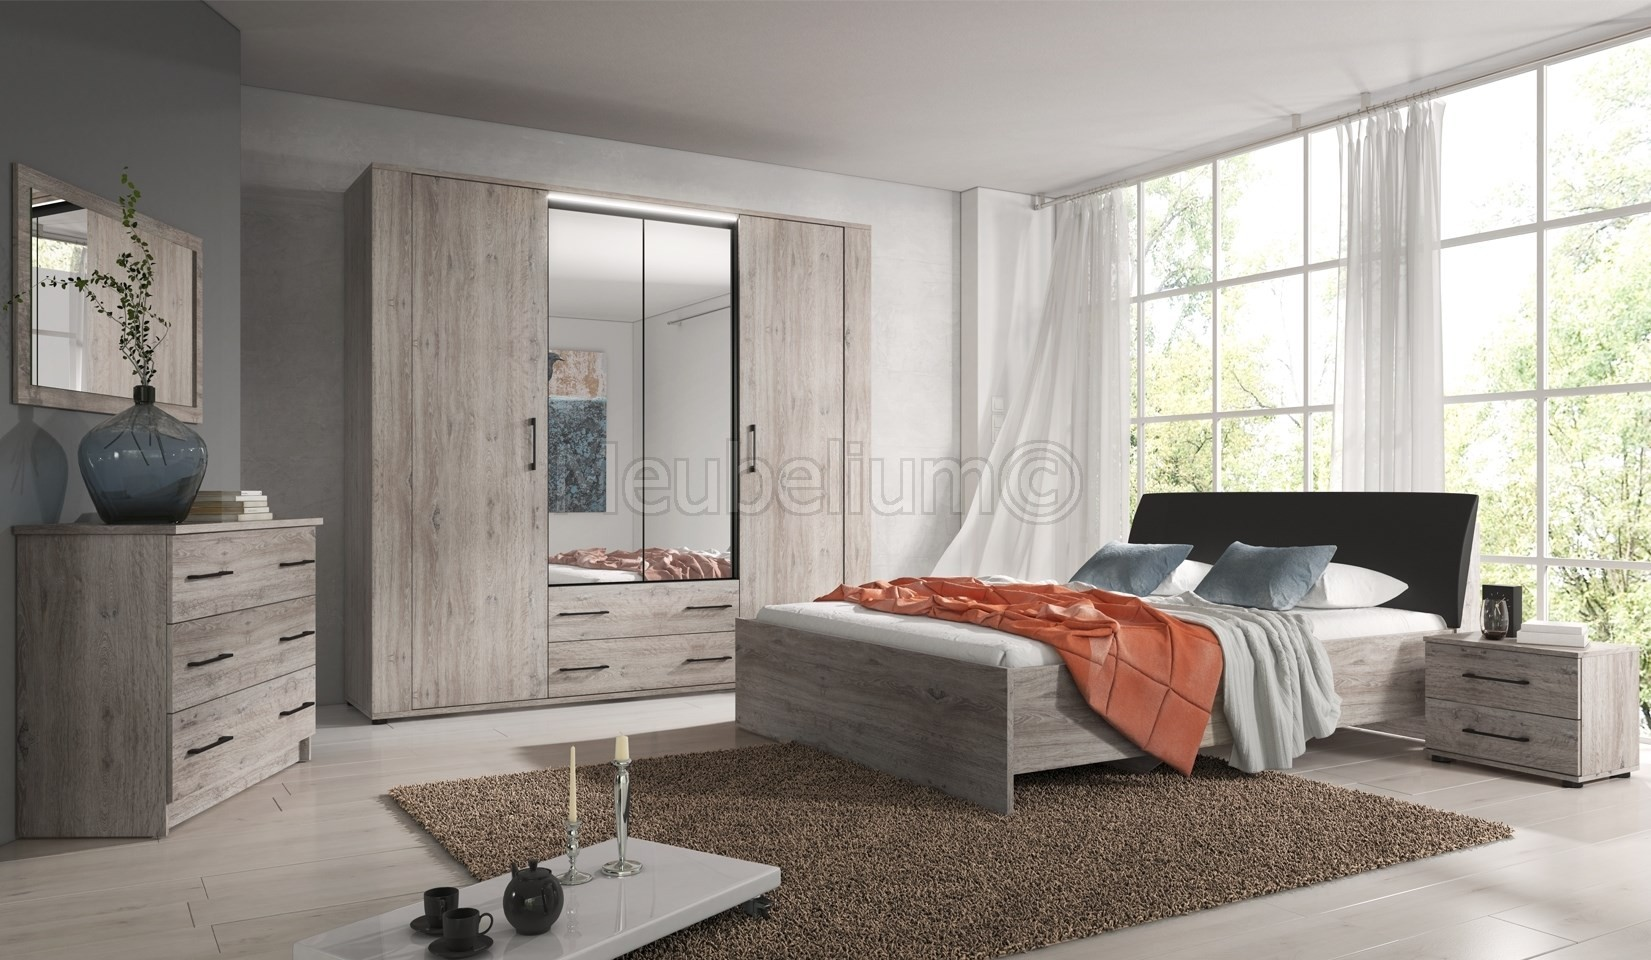 Chambre Contemporaine Chambre Adulte Contemporaine Chêne Gris Galet